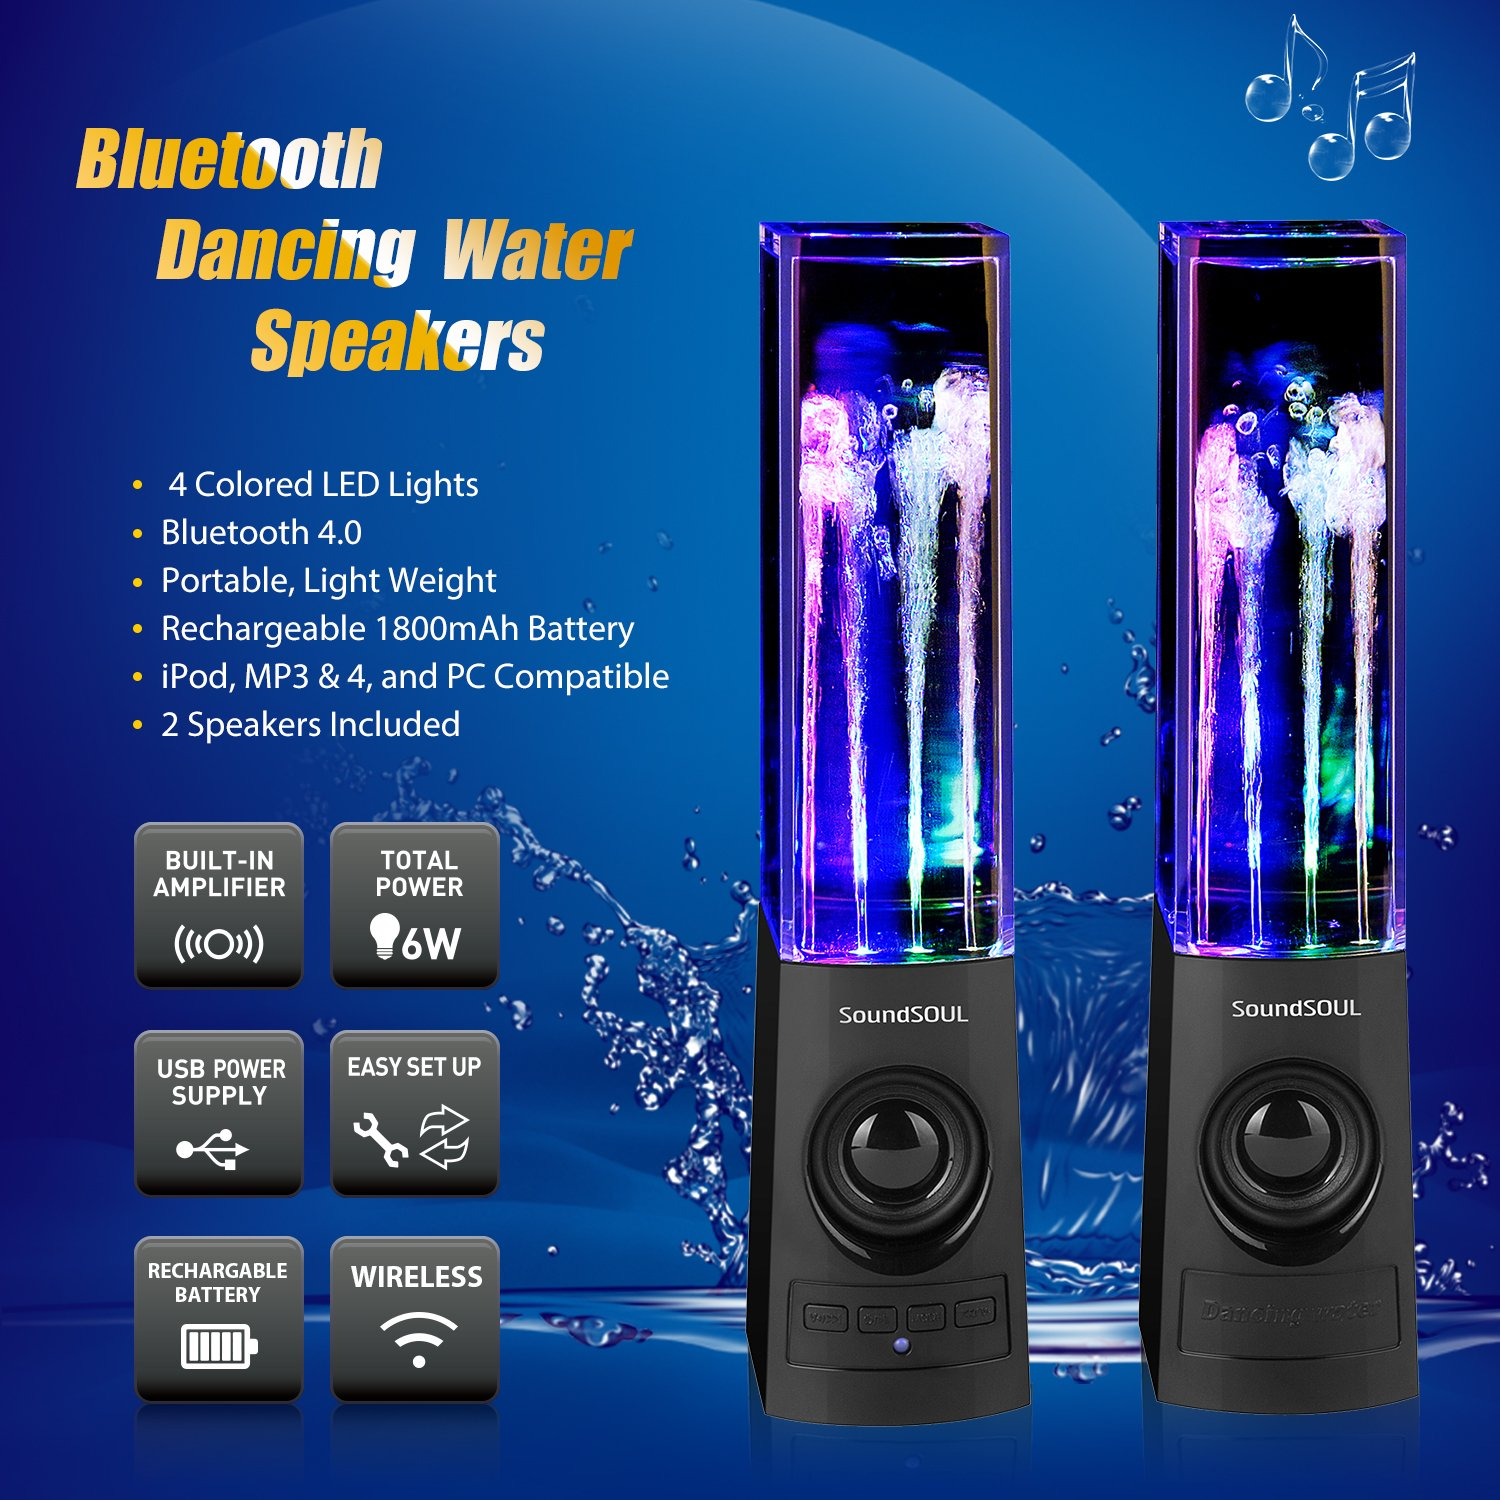 bluetooth speakers with lights and water. amazon.com: soundsoul bluetooth dancing water speakers led wireless fountain (bluetooth4.0, 4 colored lights, dual 3w speakers, with lights and o